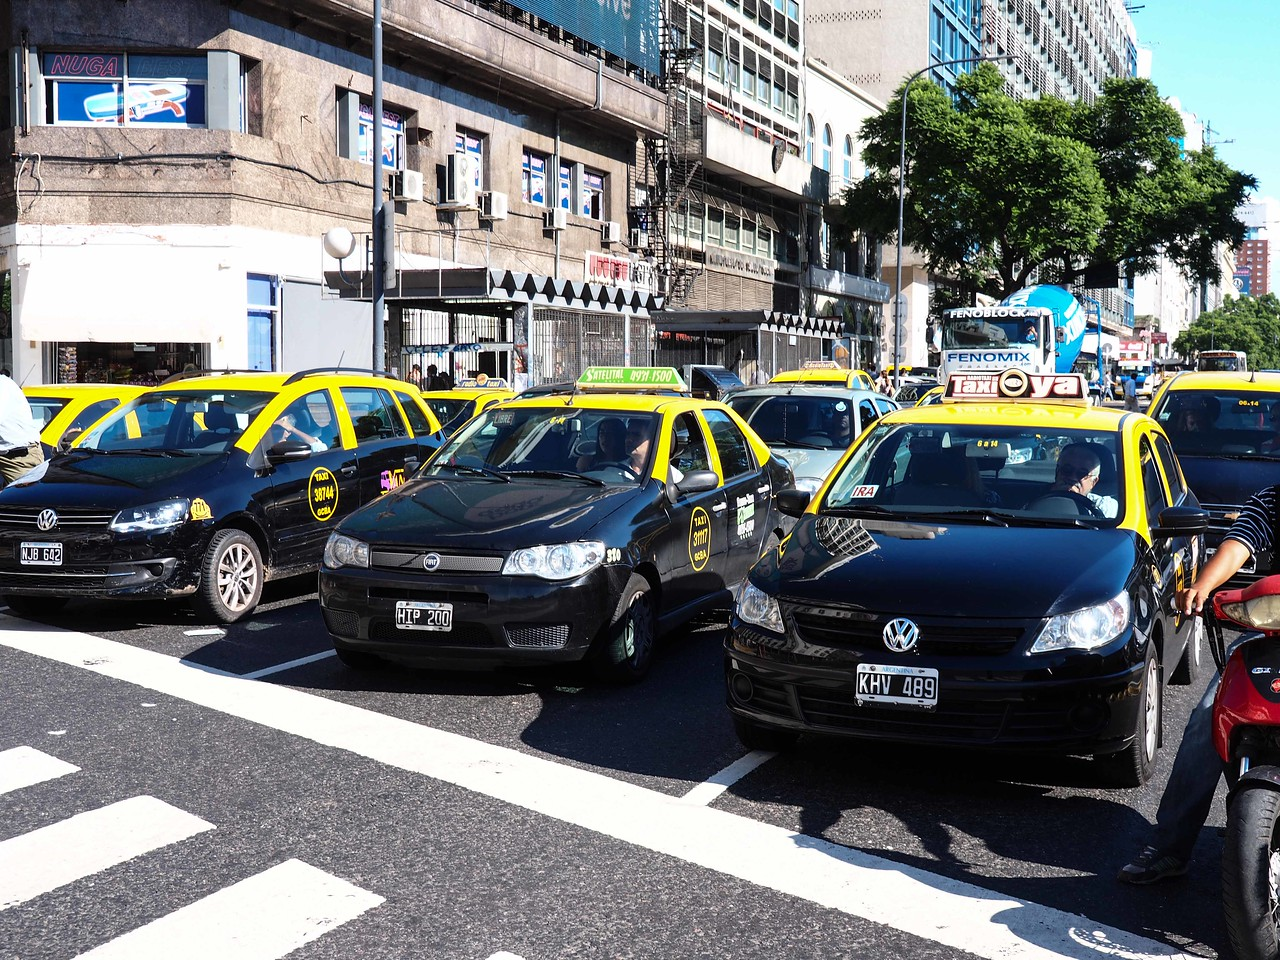 Taxis on Avenida 9 de Julio (9th of July)